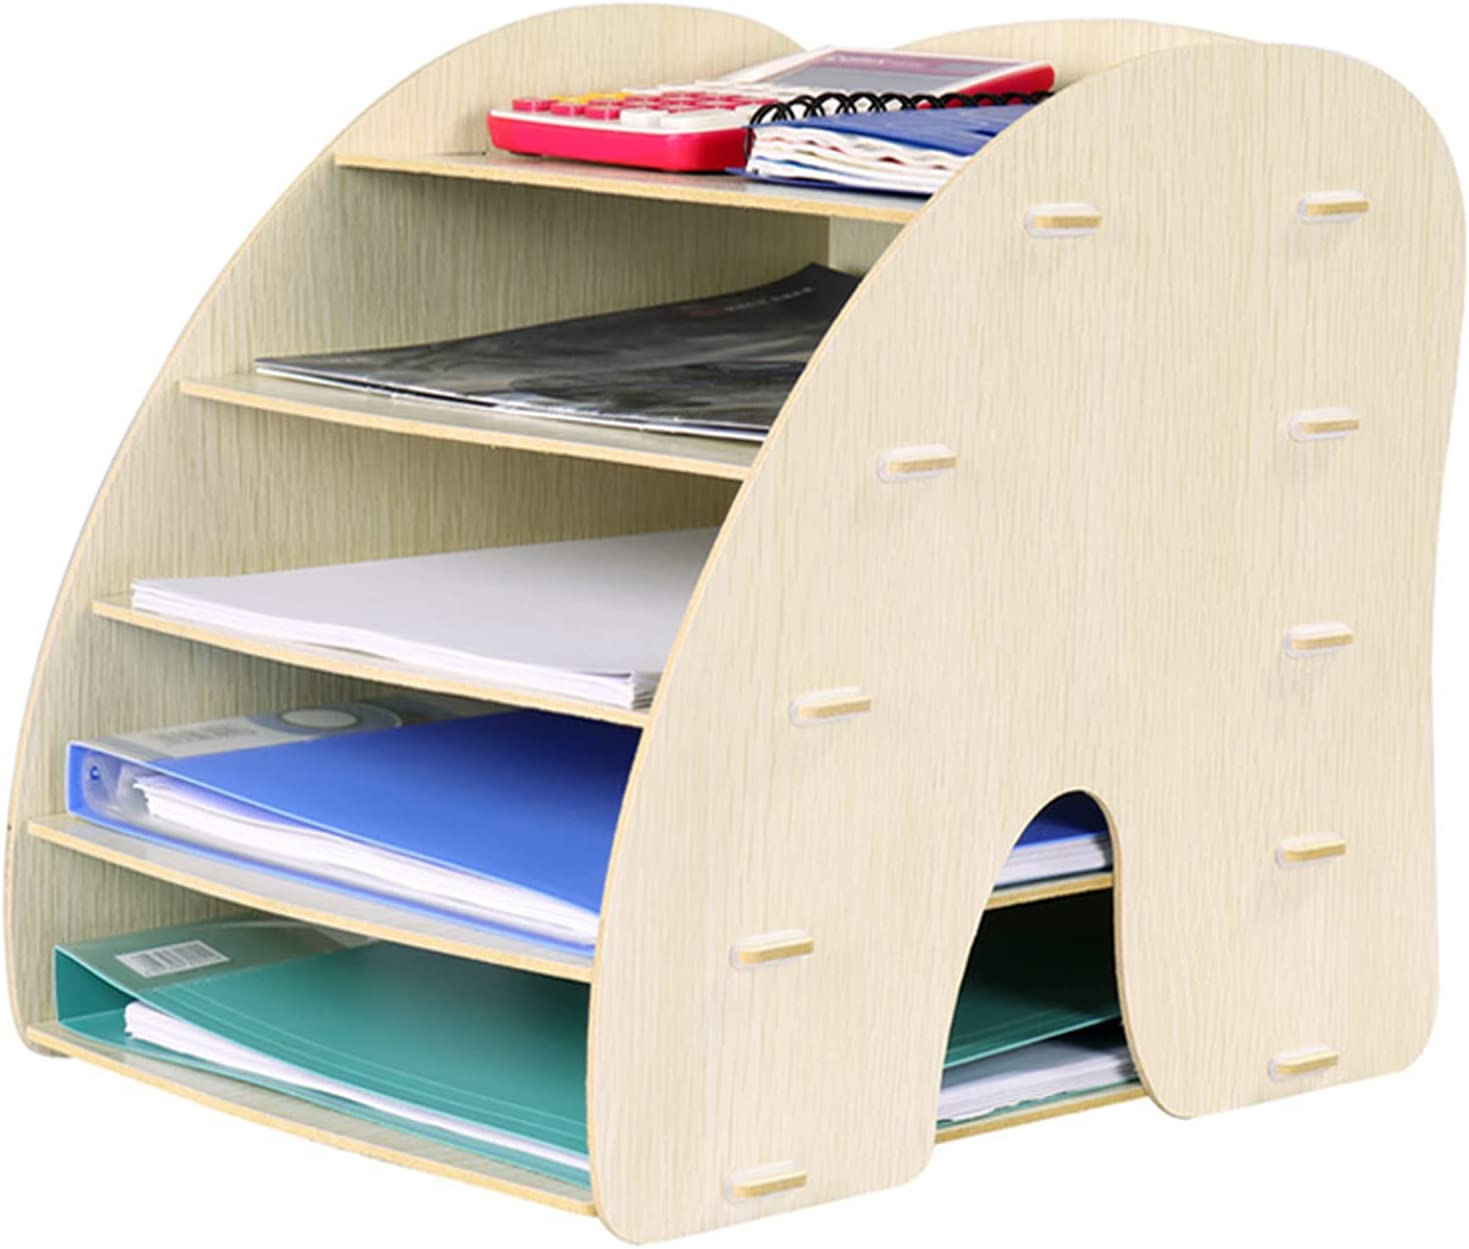 Max 84% OFF LJSF Wooden Desk Tidy Storage Organiser Office File Rack Gorgeous